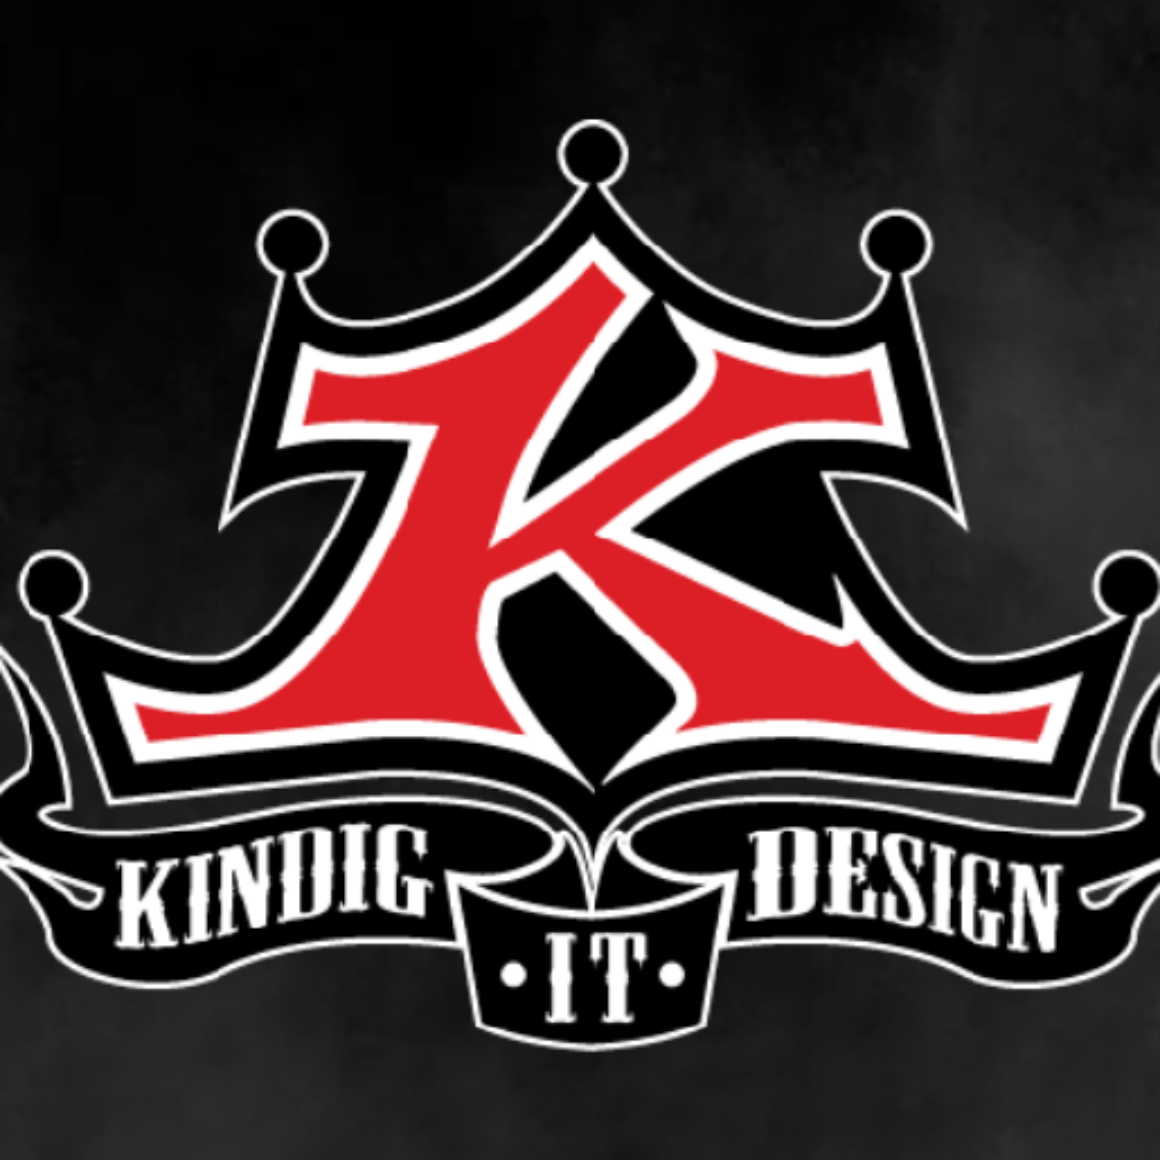 Kindig It Design Logo >> On The Ground Designs | OTG